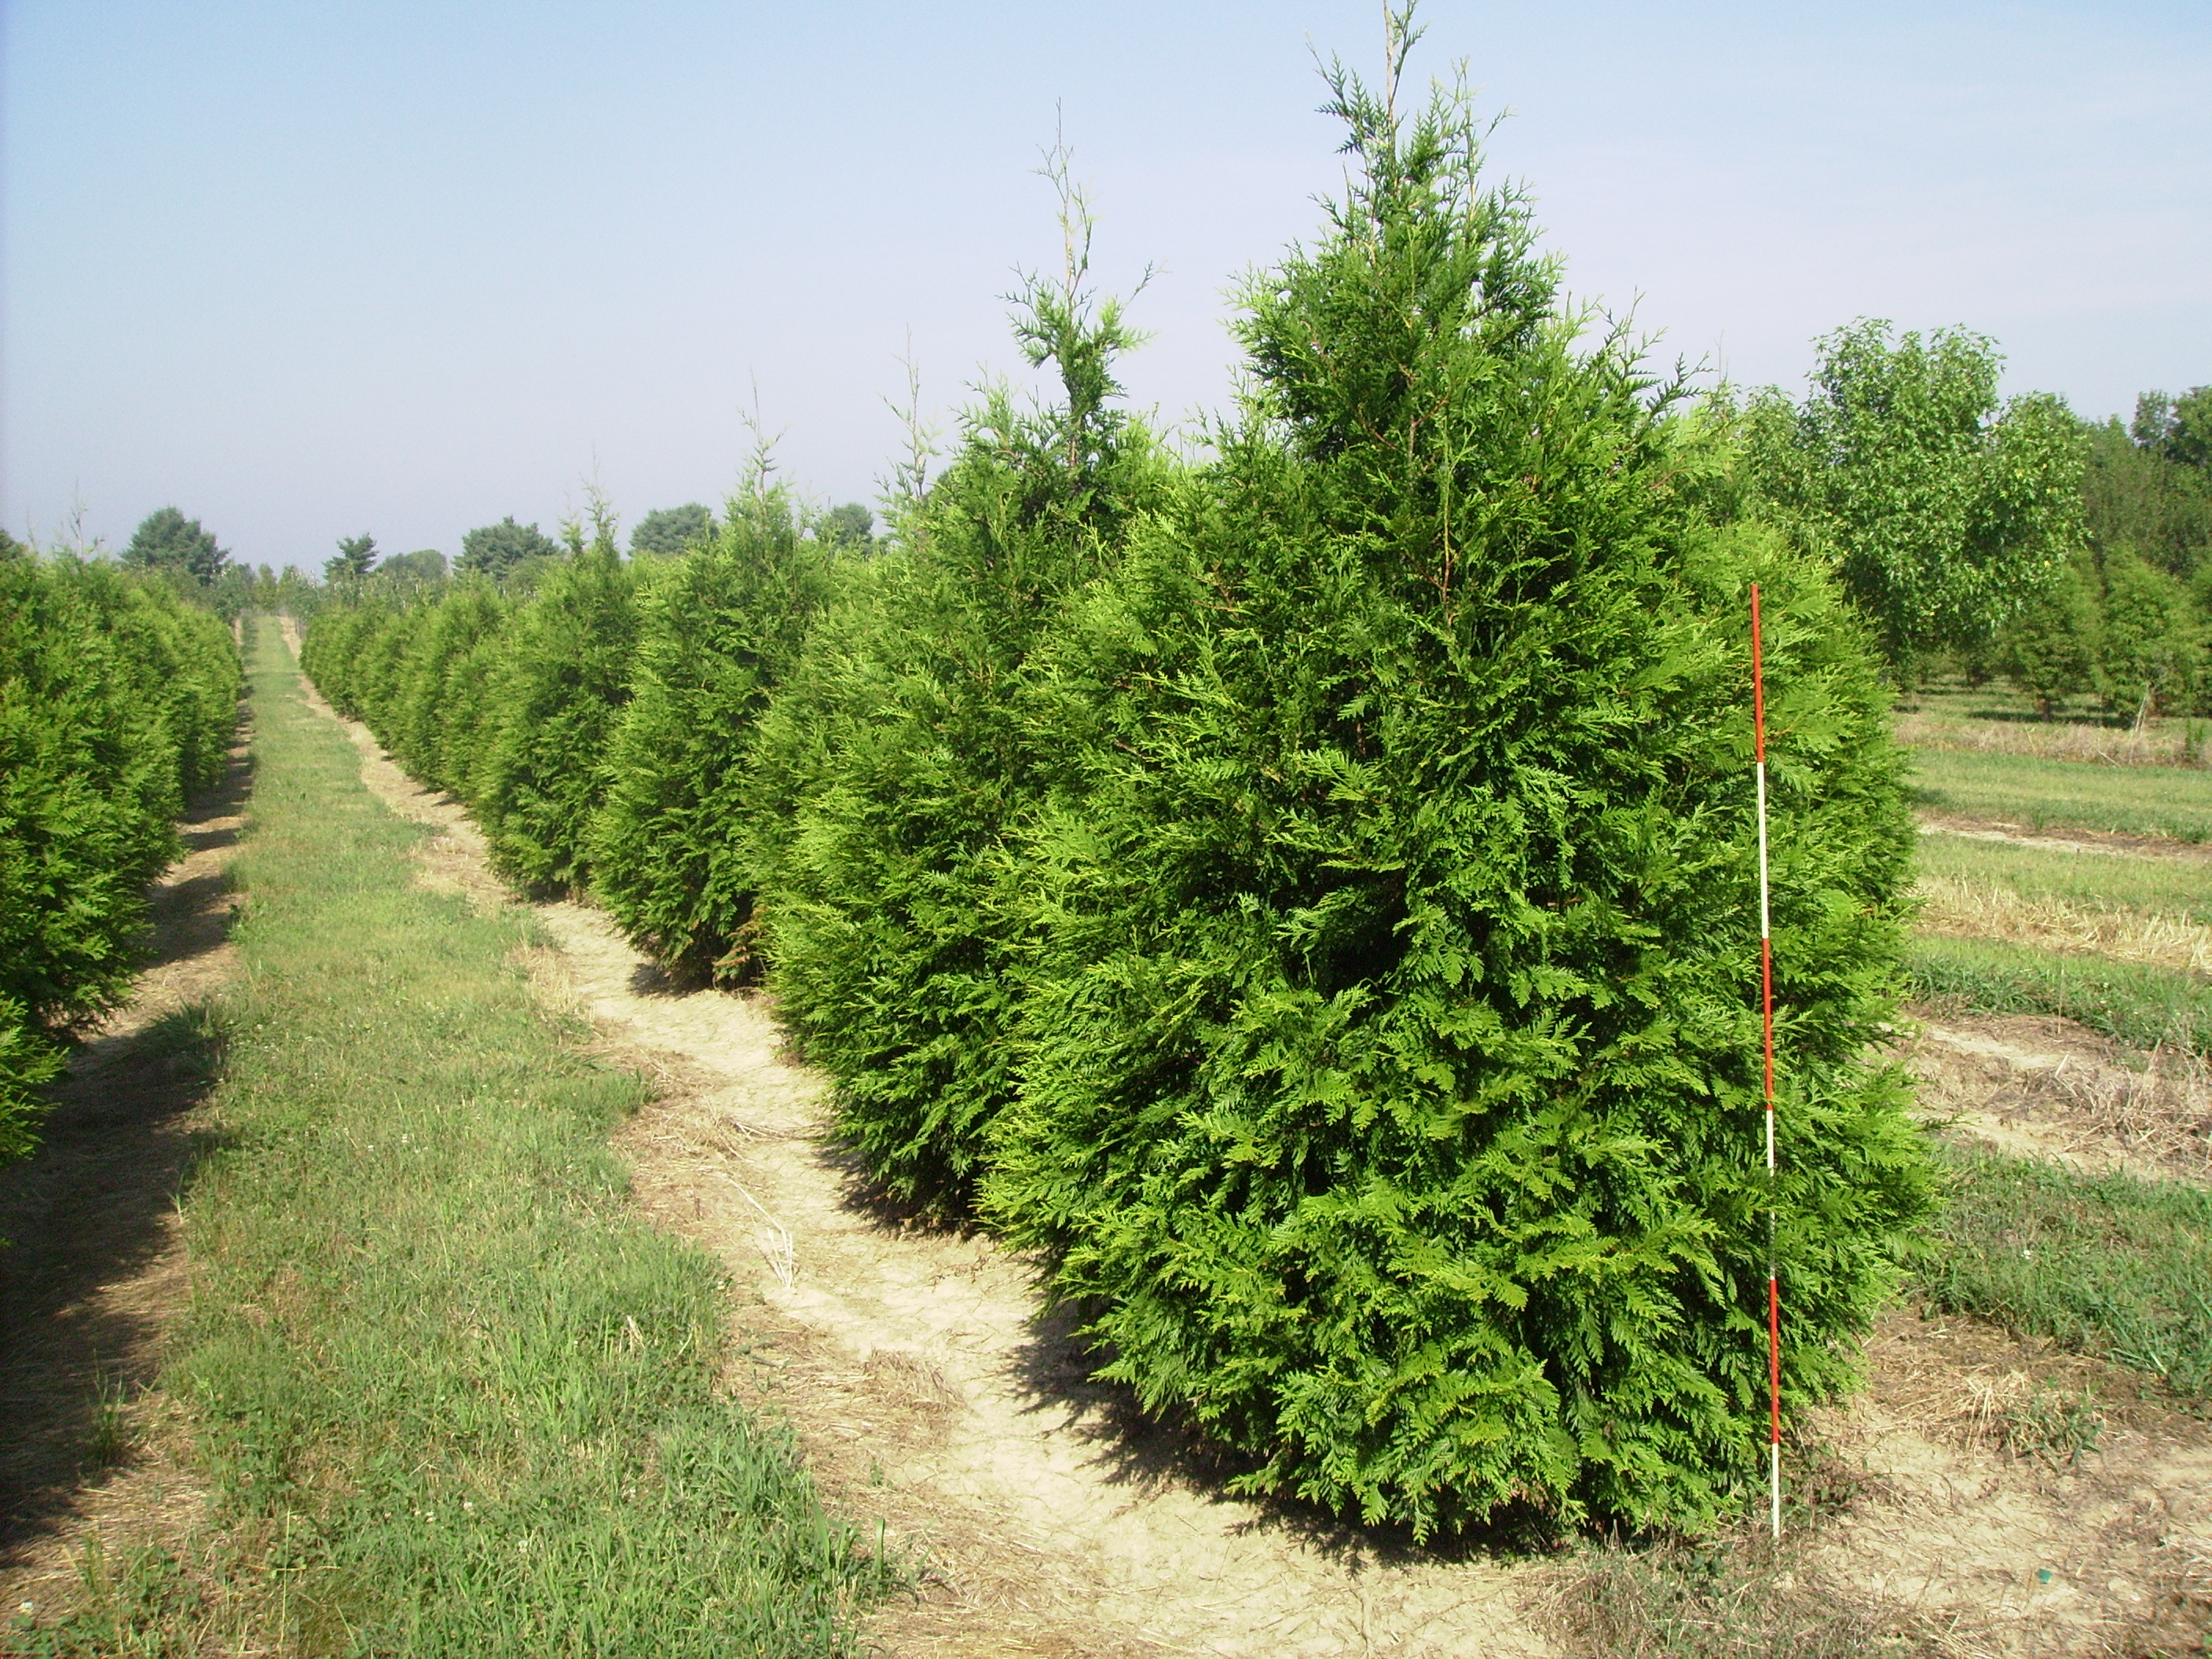 Thuja green giant arborvitae row flickr photo sharing for Green giant arborvitae